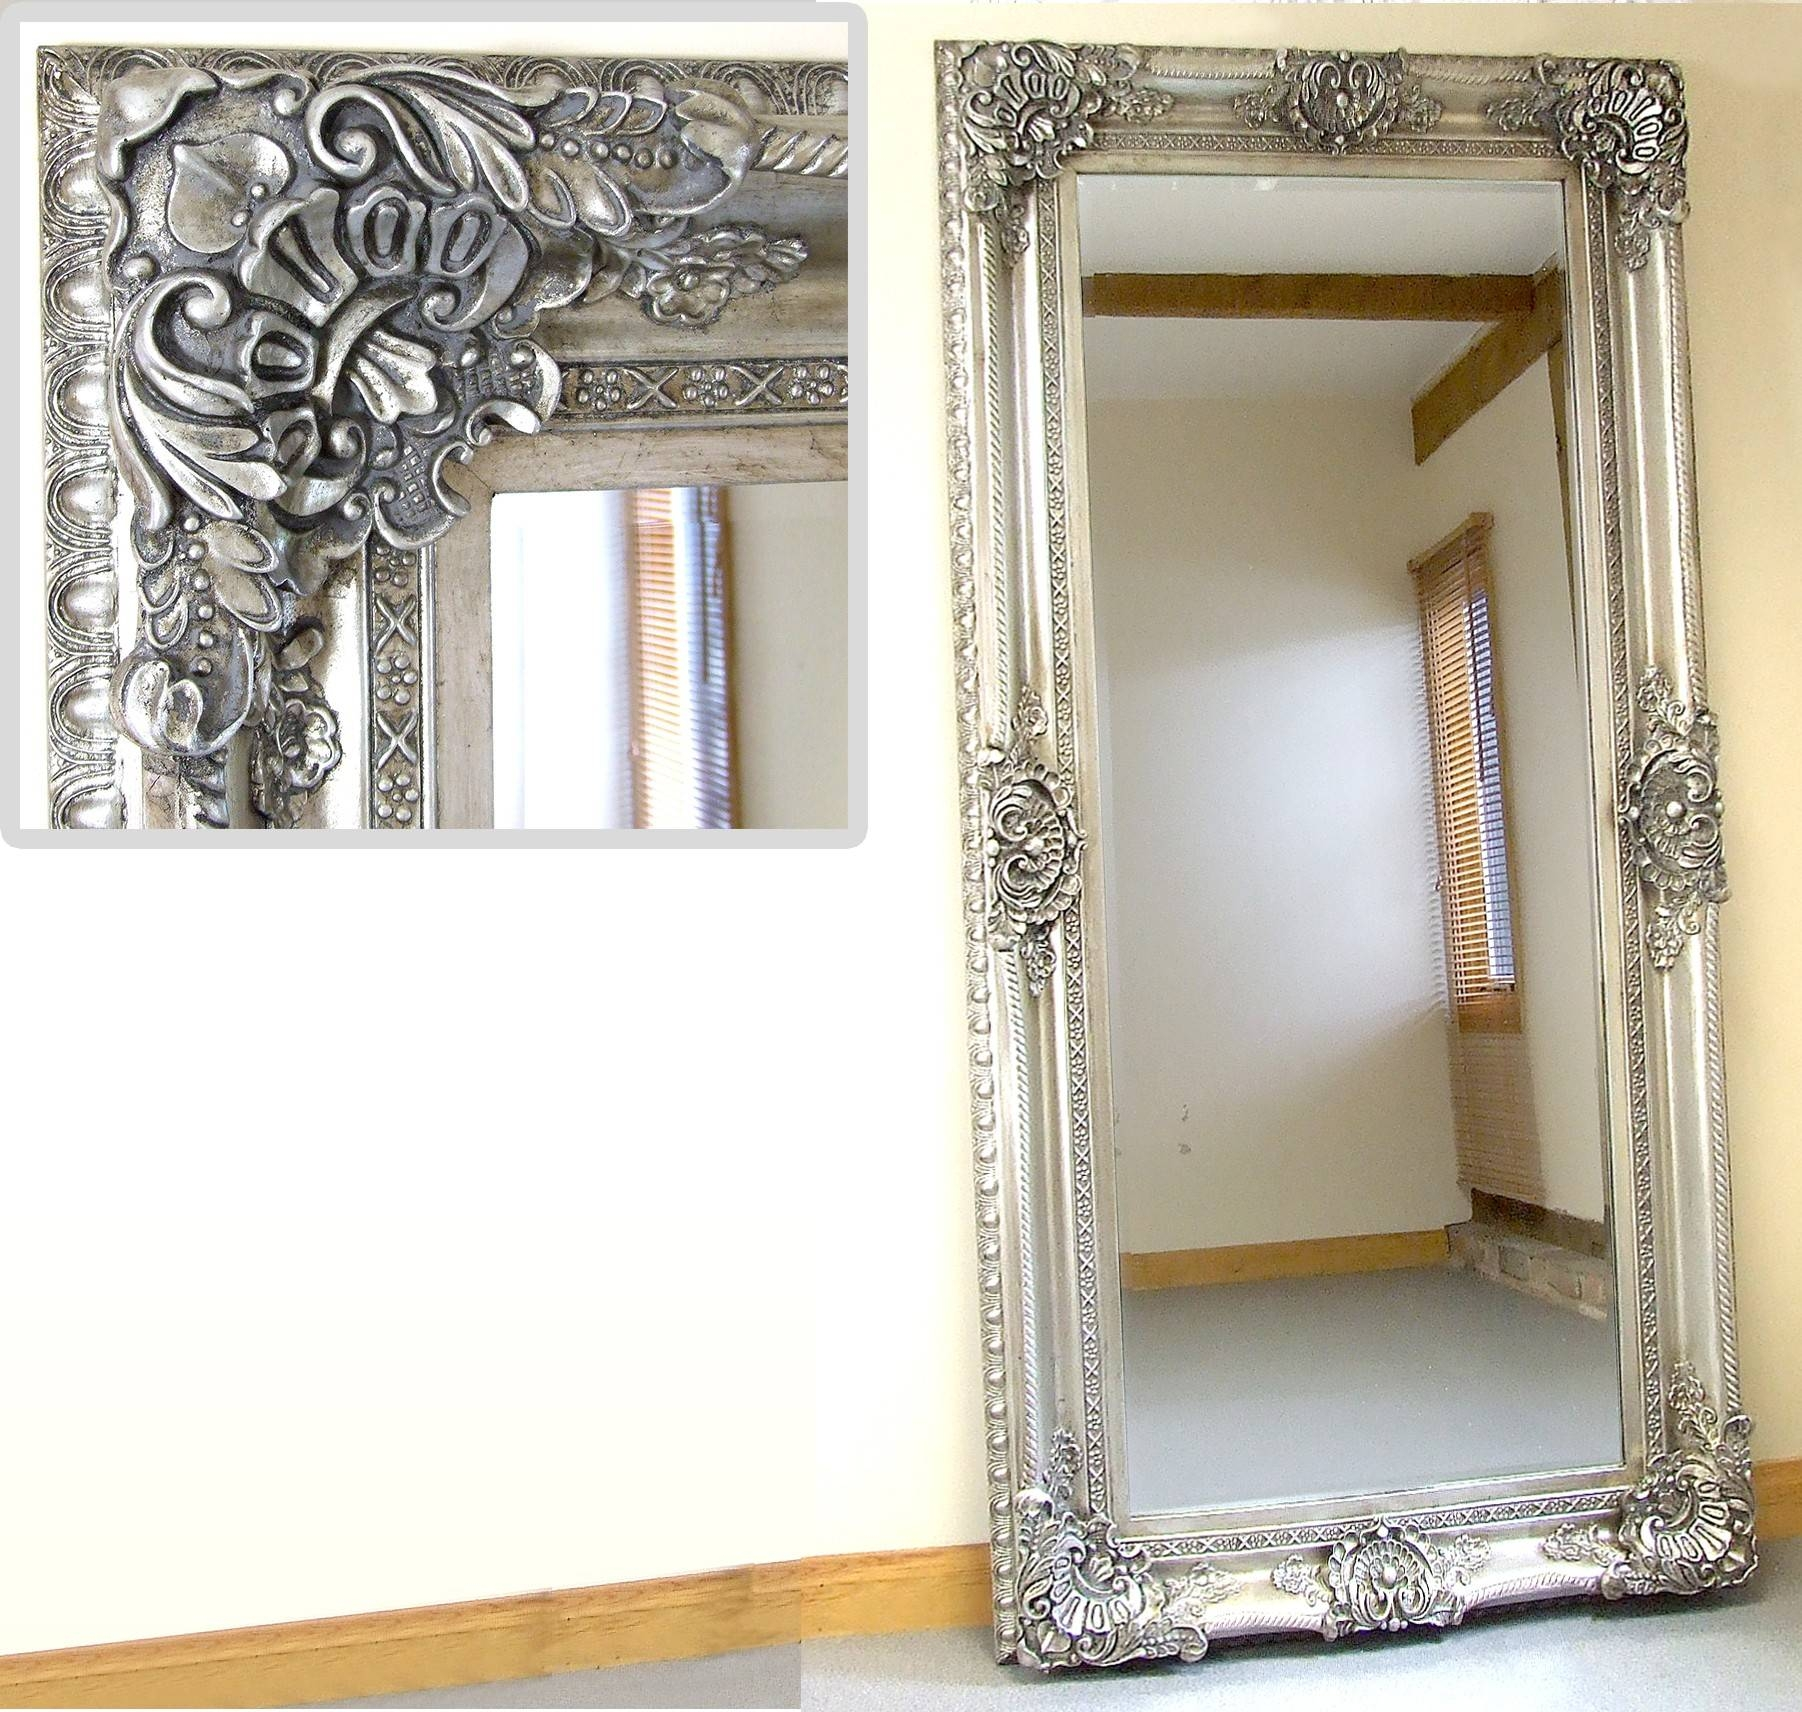 Full Length Silver Mirror 40 Unique Decoration And Ornate Full With Regard To Large Ornate Mirrors (View 6 of 25)